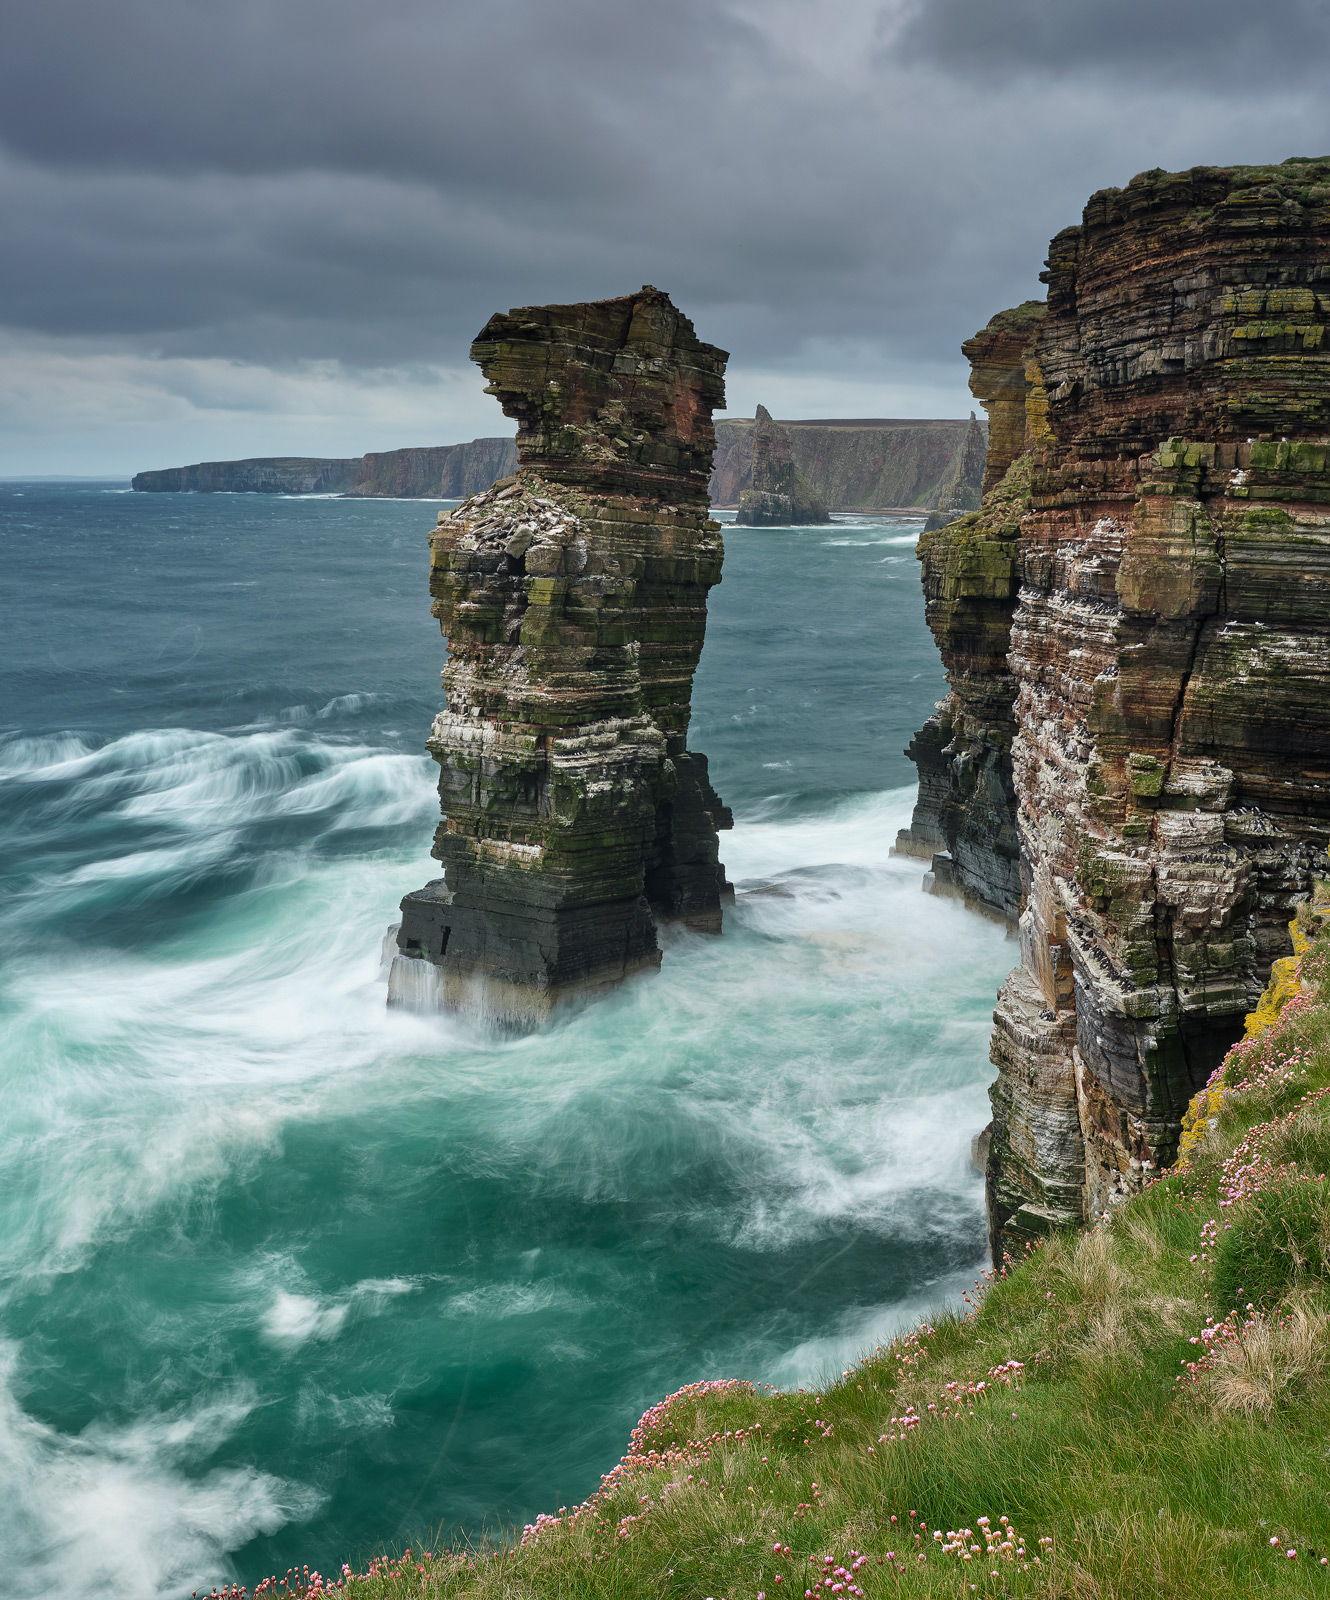 A huge turquoise sea roared around the isolated sea stacks and cliffs of the Caithness coastline creating plumes of spray beneath a heavy sky.